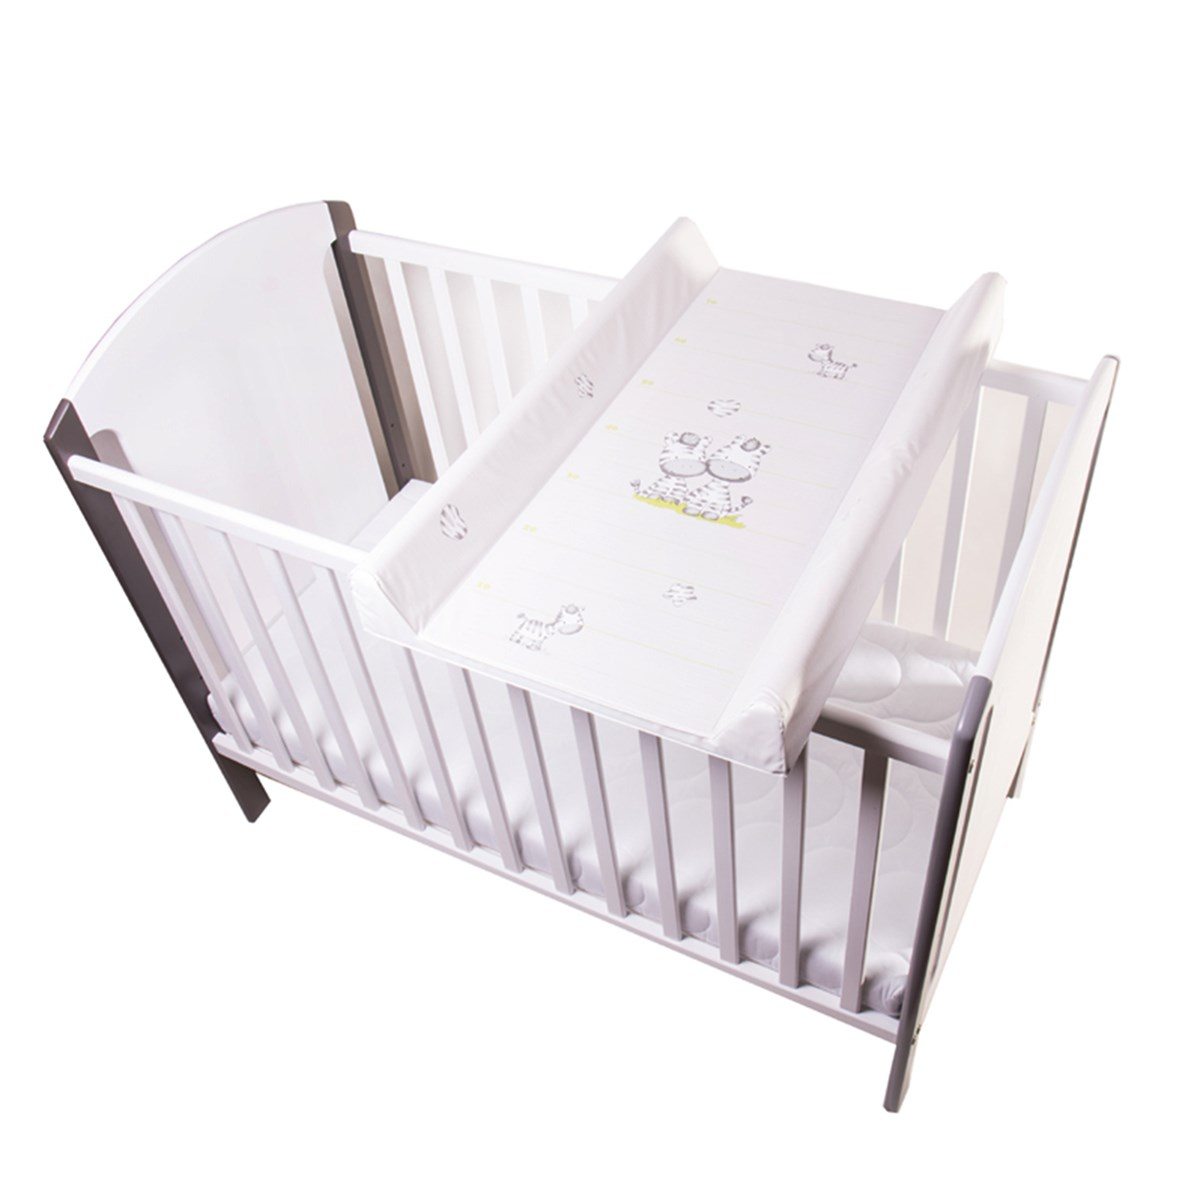 Basson Baby - Changing Pad for Cot Zebra Grey/White ...